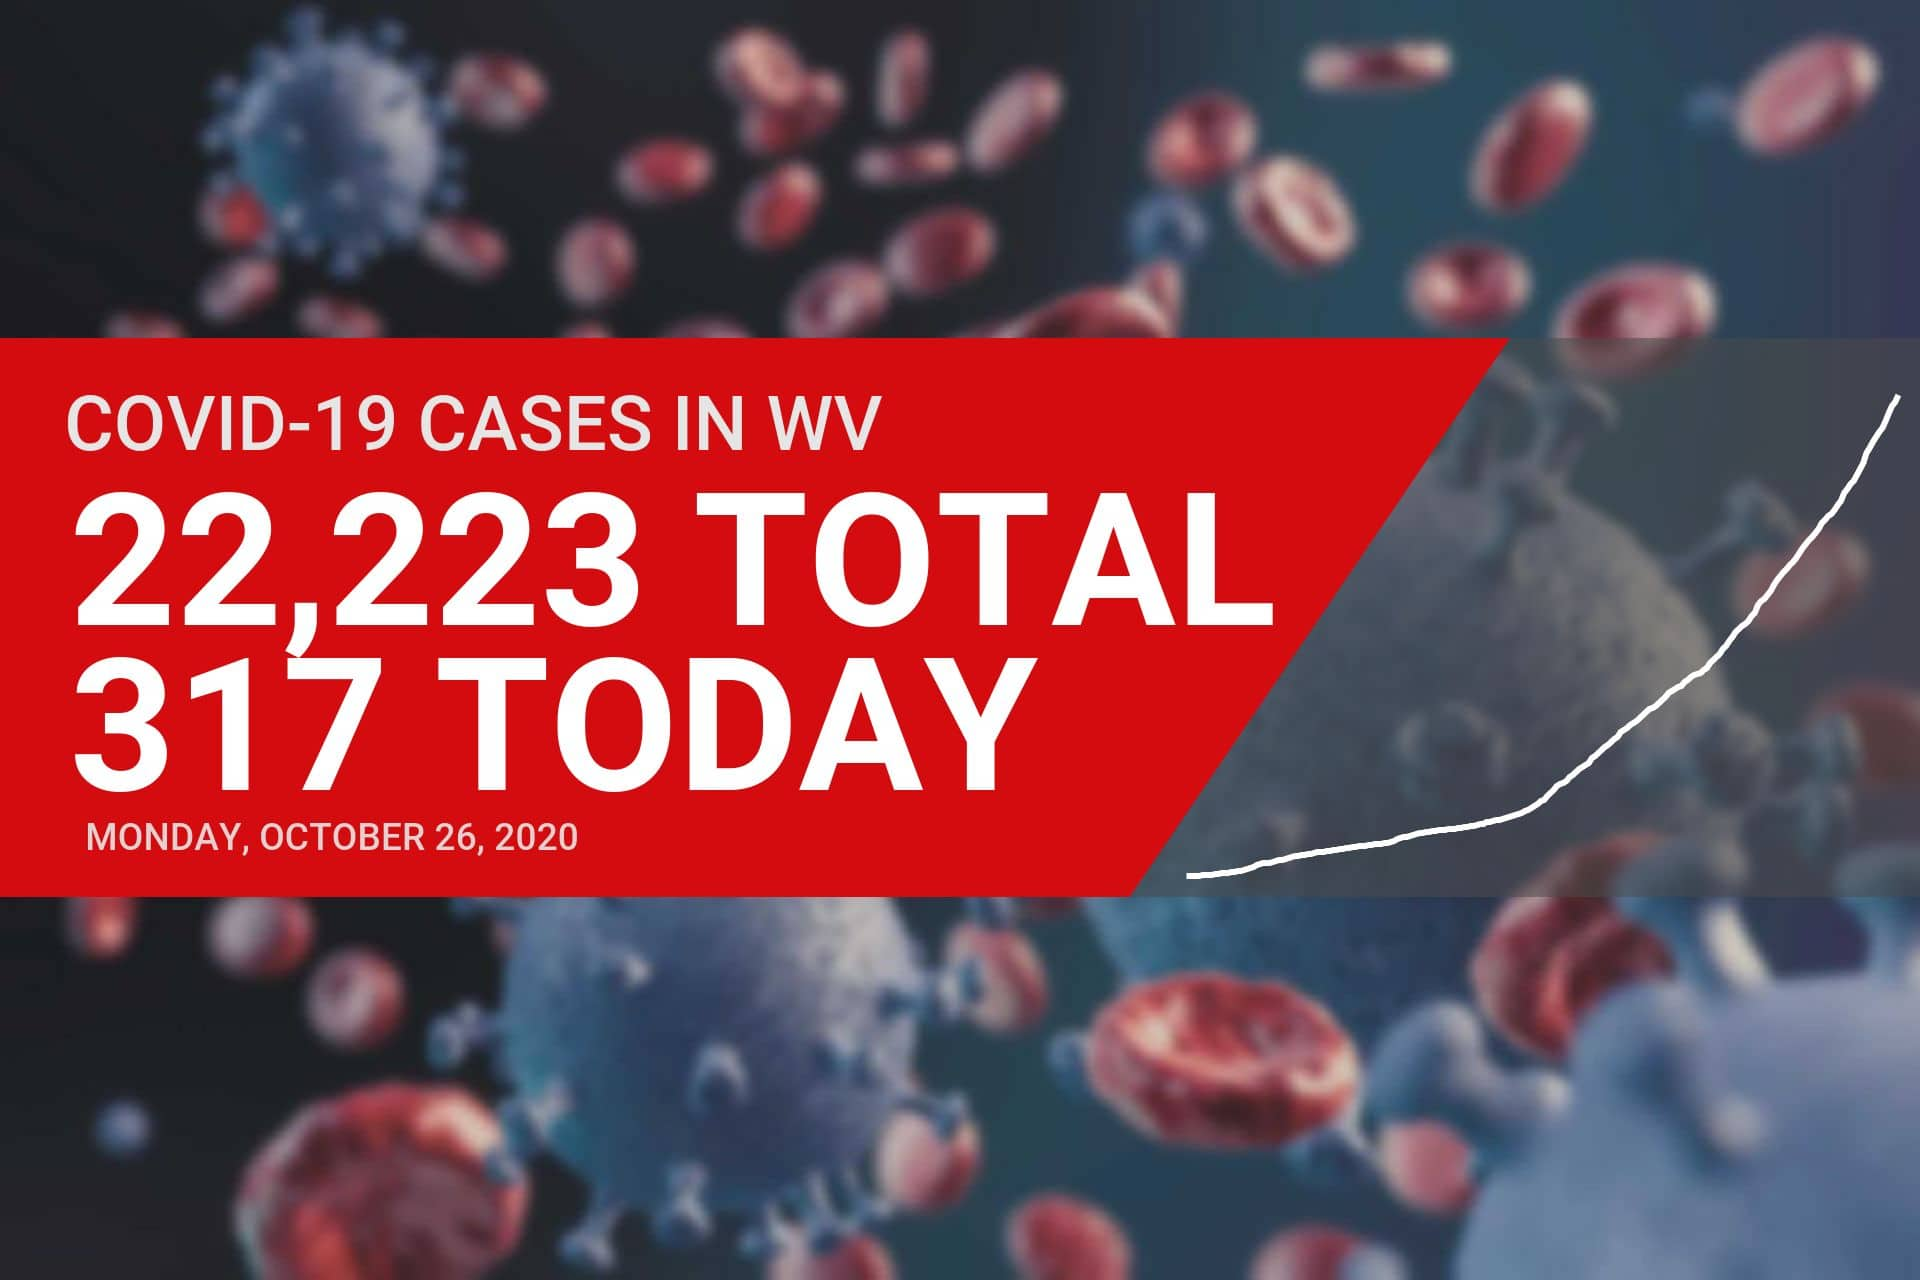 Five new COVID-19 cases reported in Upshur County on Monday